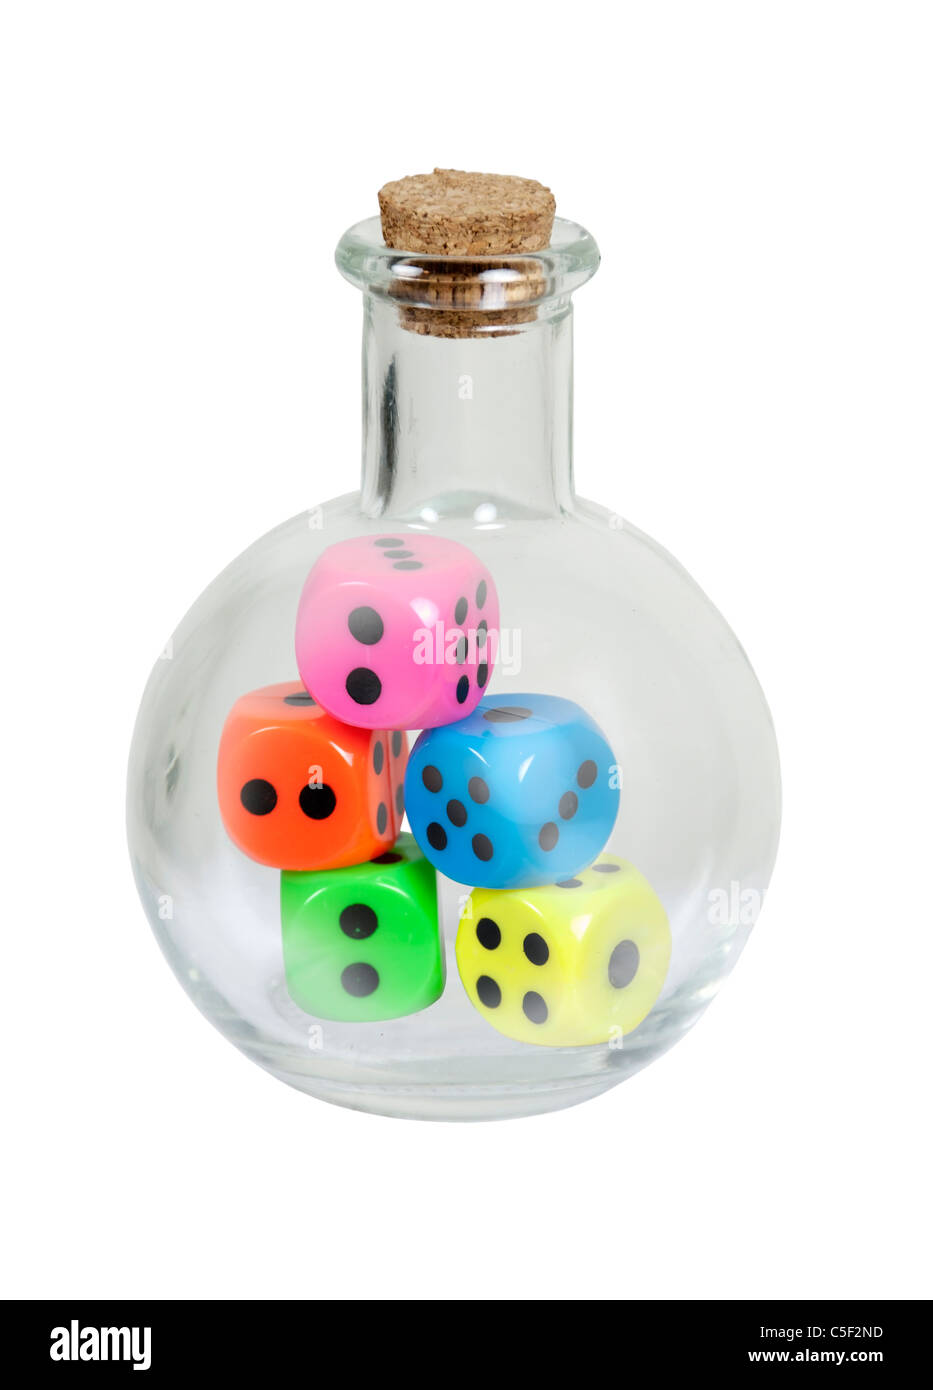 Bottle of chance shown by a round glass bottle with cork stopper with colorful dice of chance inside - path included - Stock Image